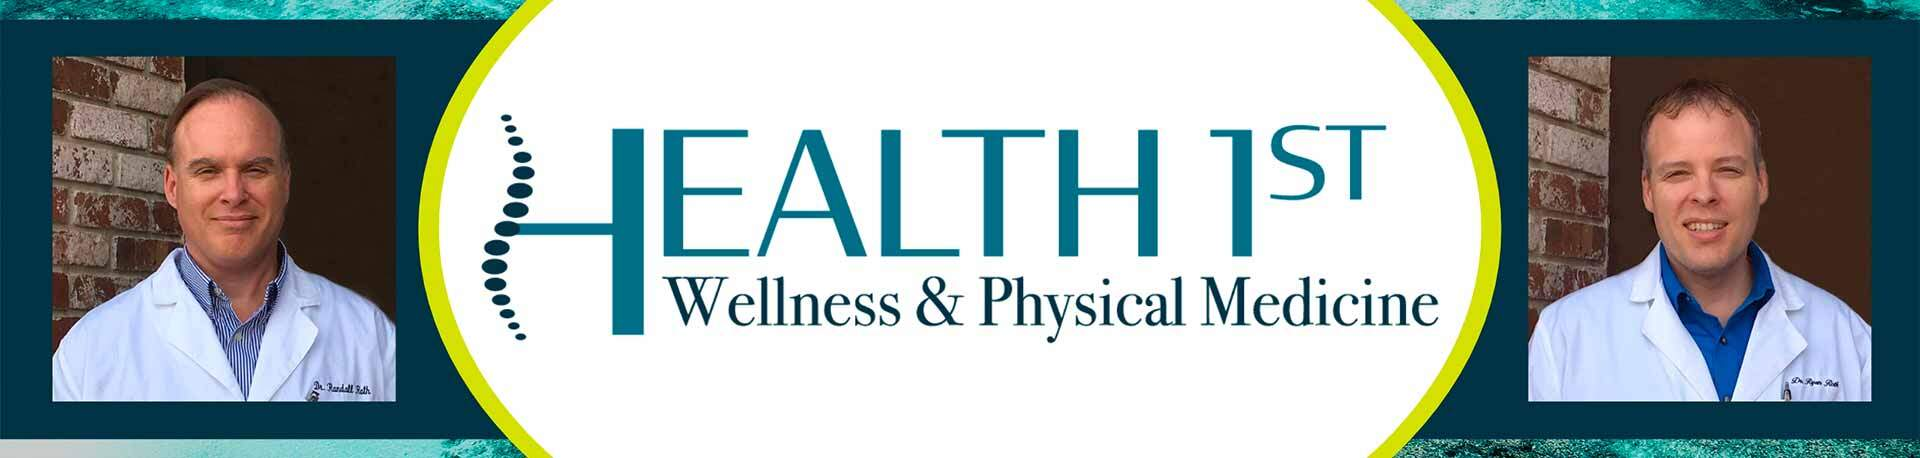 Health 1st Wellness & Physical Medicine